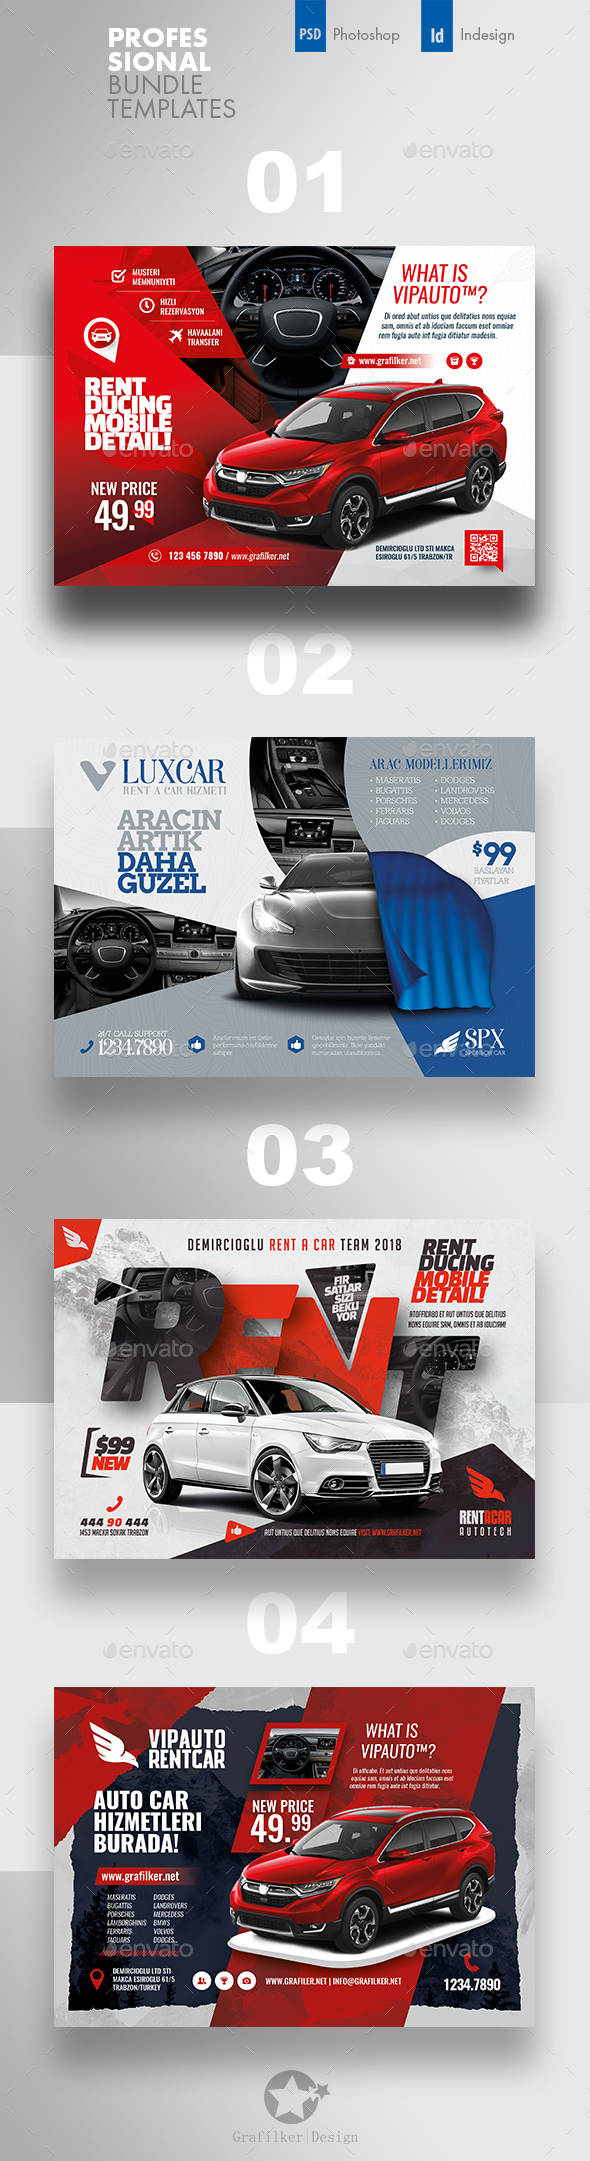 Rent A Car Flyer Bundle Templates - Corporate Flyers